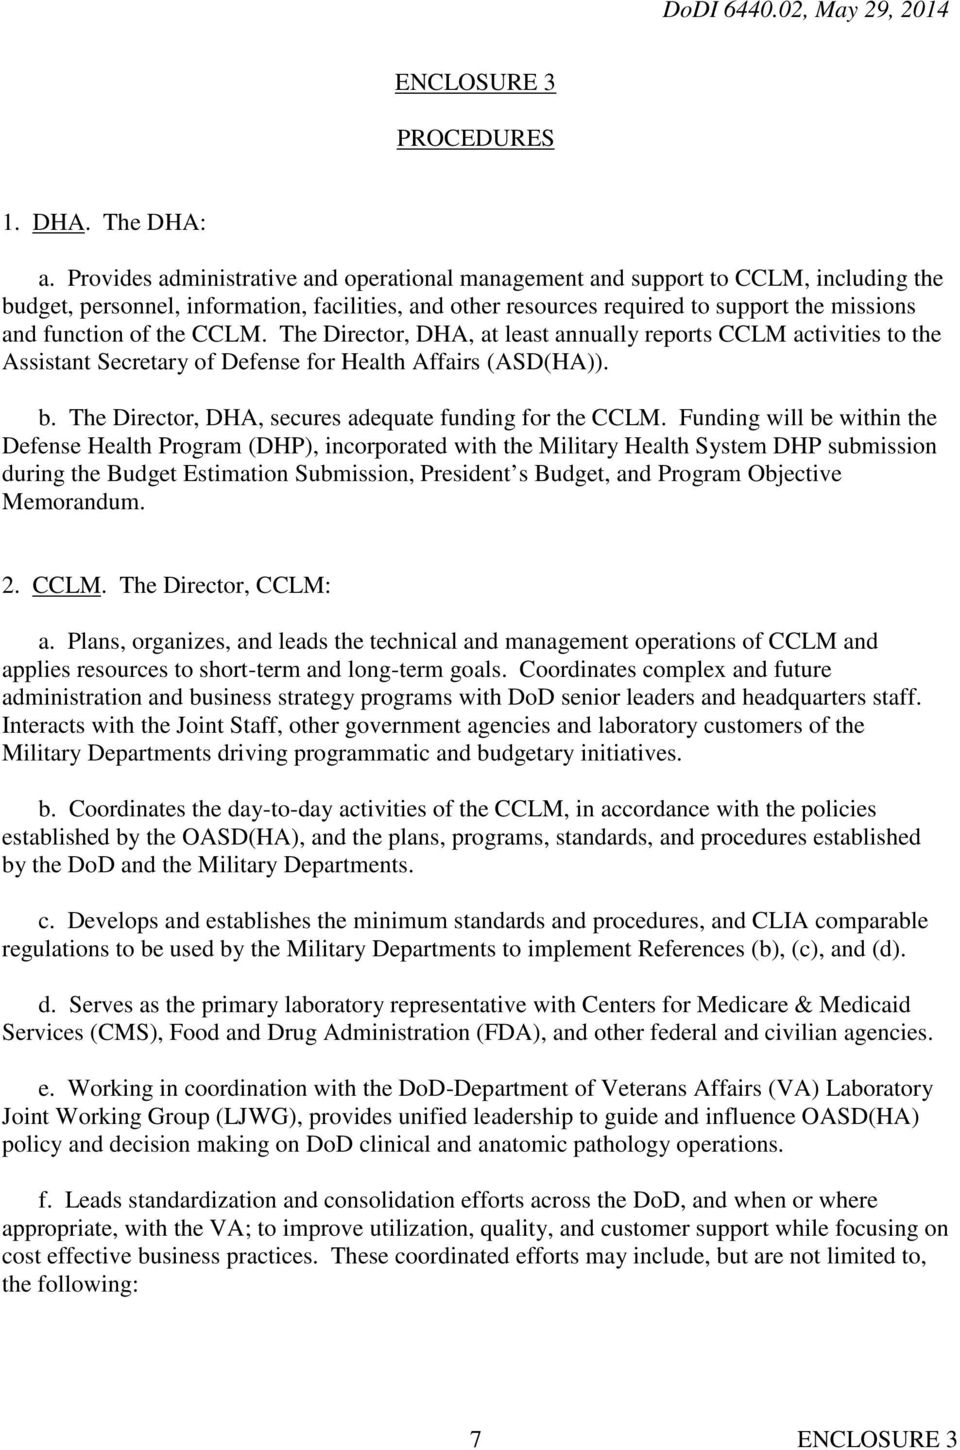 the CCLM. The Director, DHA, at least annually reports CCLM activities to the Assistant Secretary of Defense for Health Affairs (ASD(HA)). b. The Director, DHA, secures adequate funding for the CCLM.